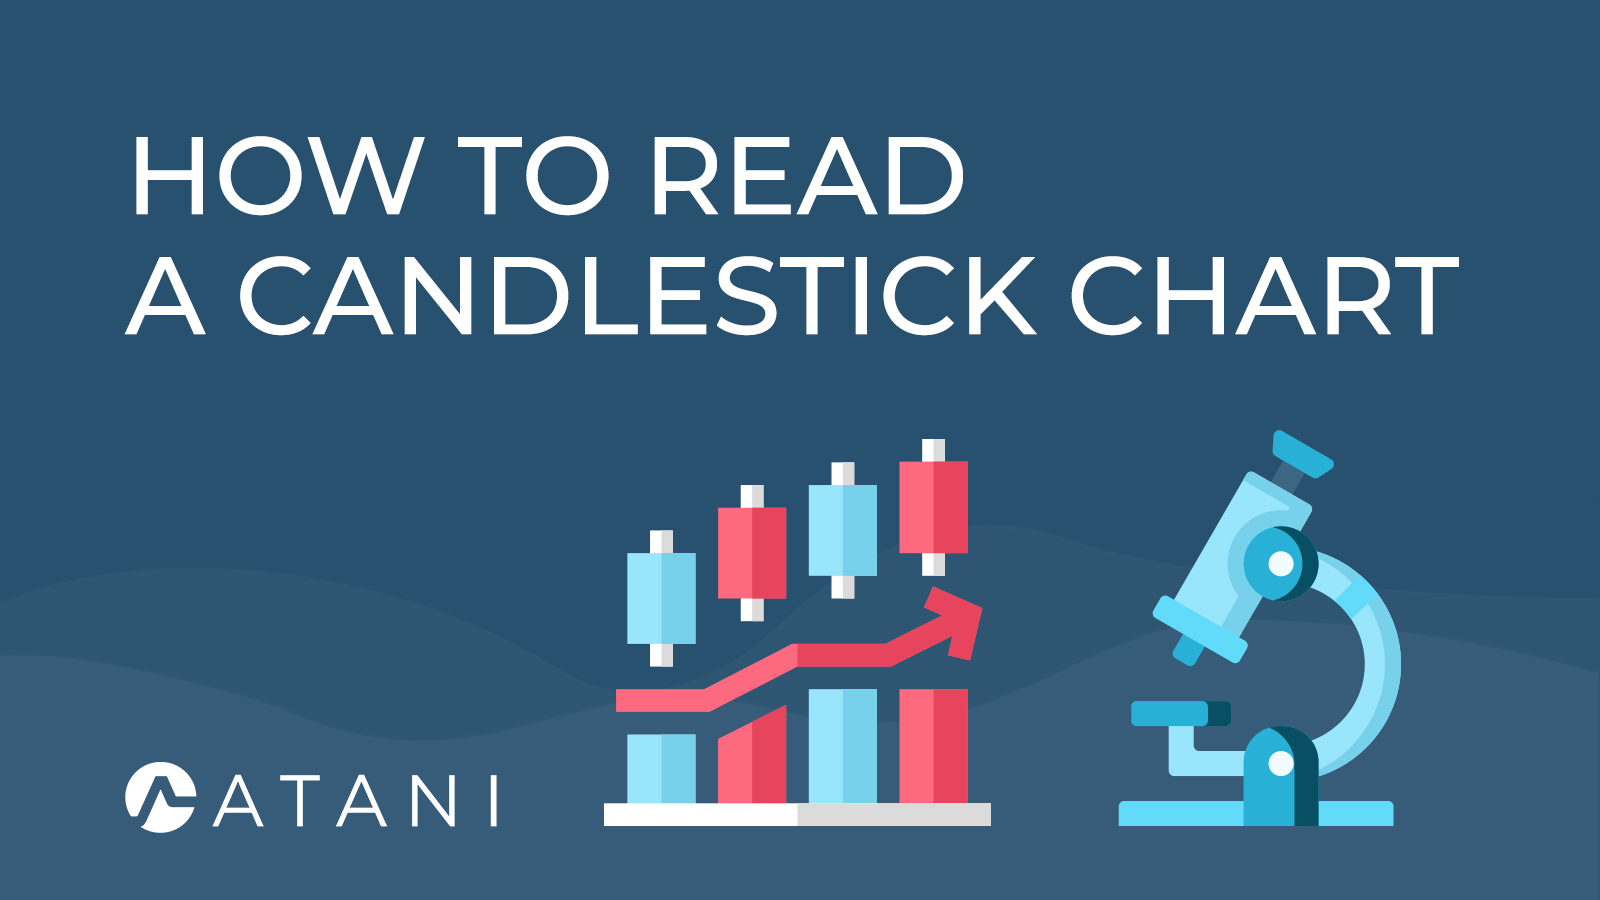 How to read a candlestick in Atani